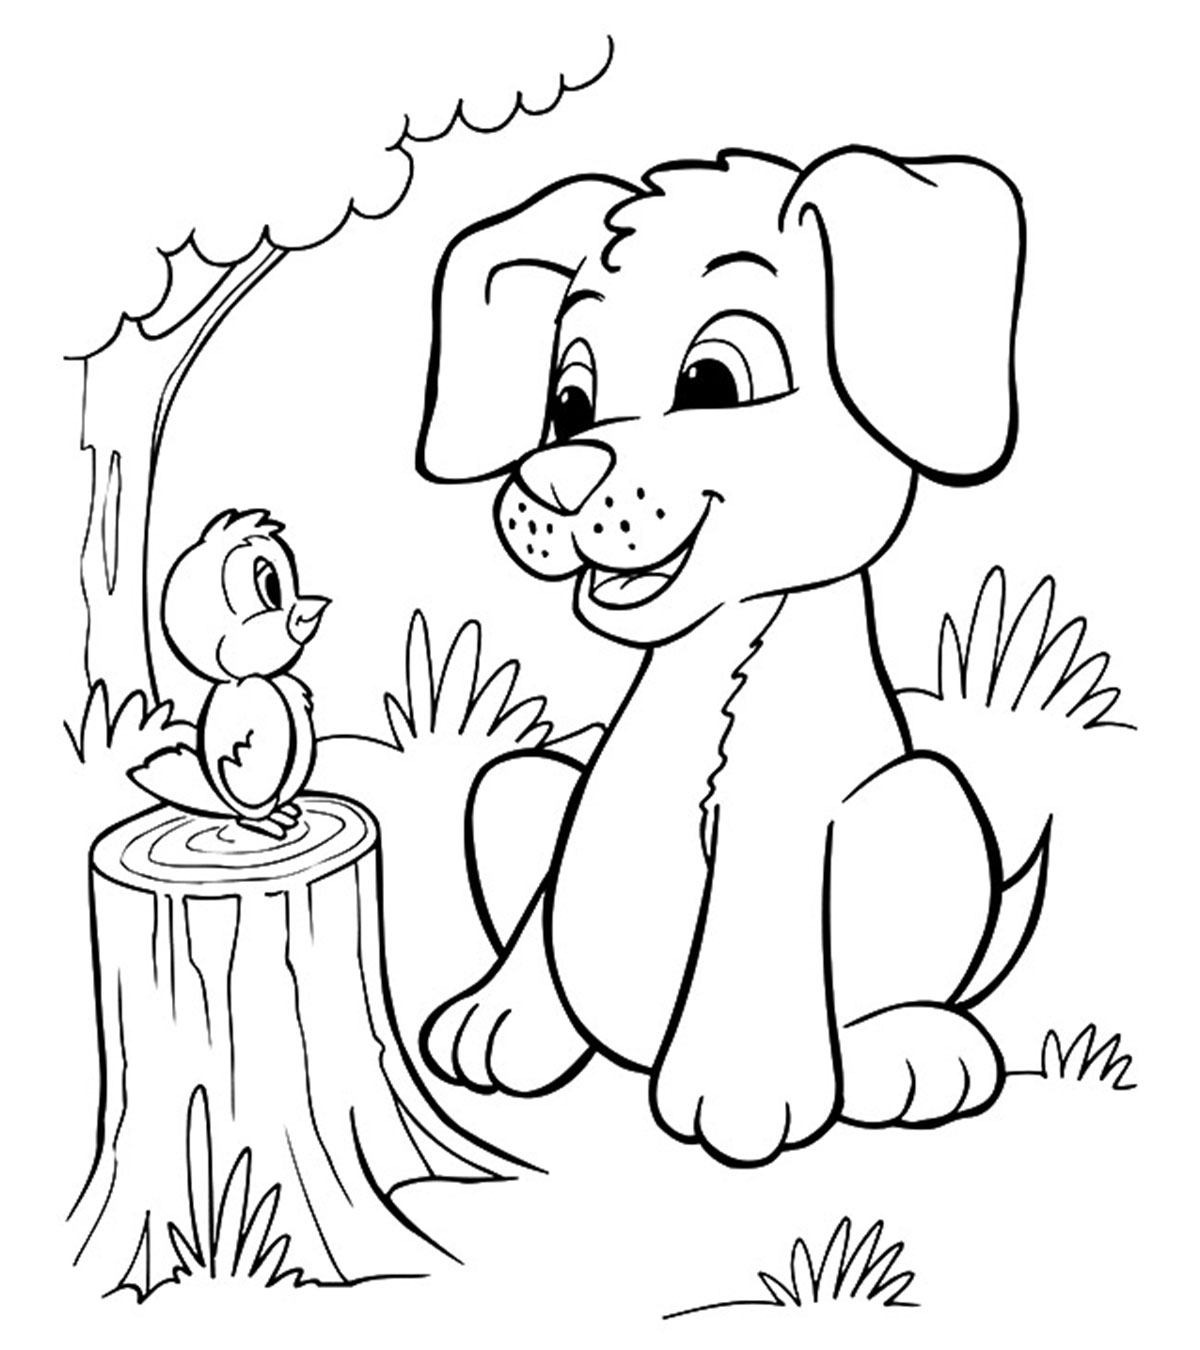 Little Puppy Coloring Pages Top 30 Free Printable Puppy Coloring Pages Online